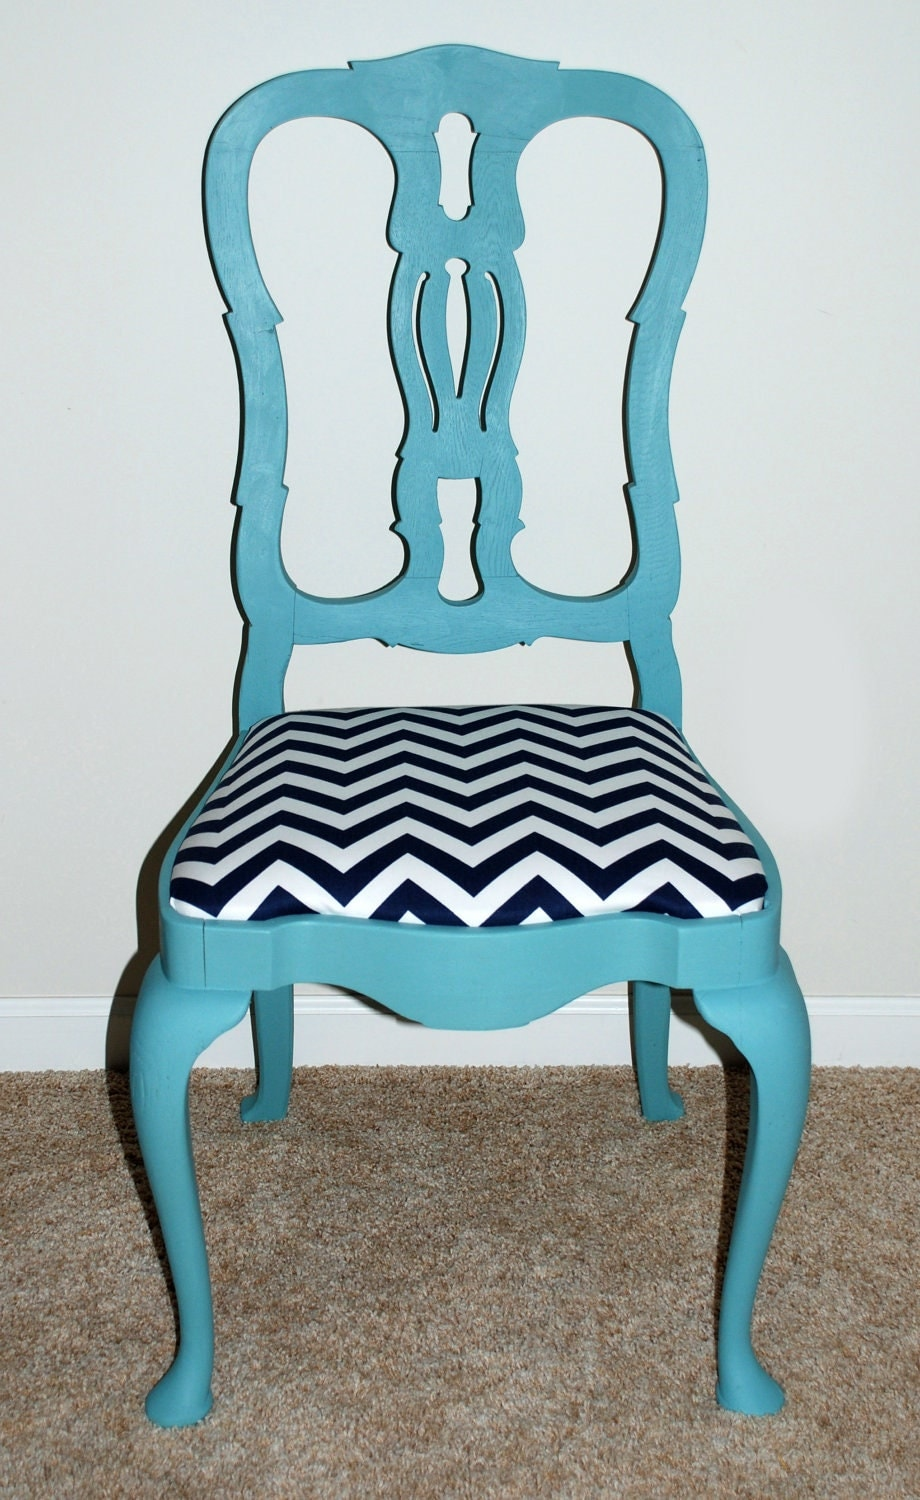 Refinished Turquoise and Chevron Print Chair by ElsAndWhistles